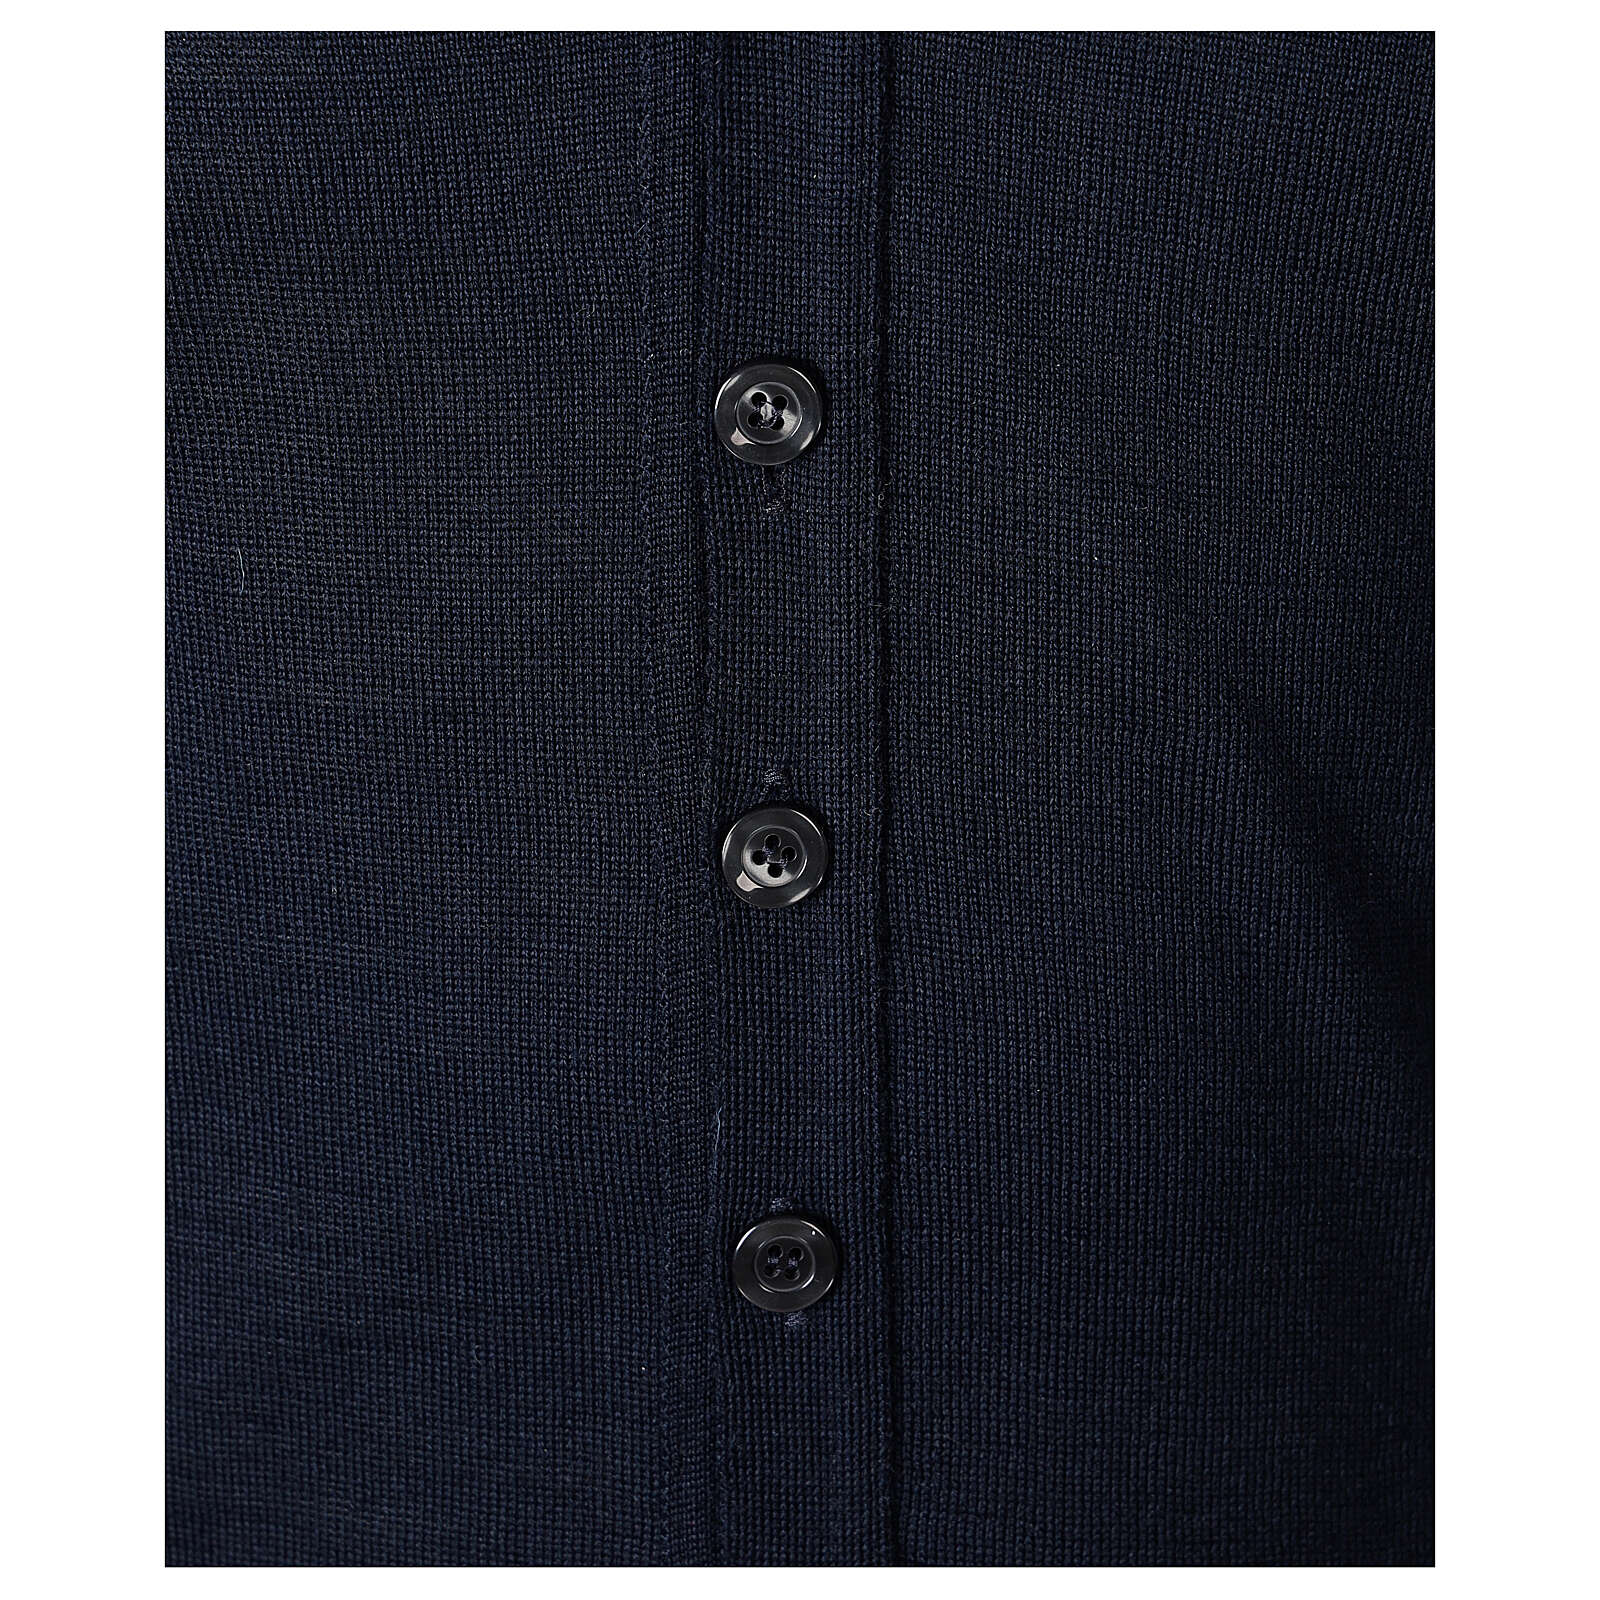 Clergy button-front cardigan blue plain knit 50% acrylic 50% merino wool In Primis 4